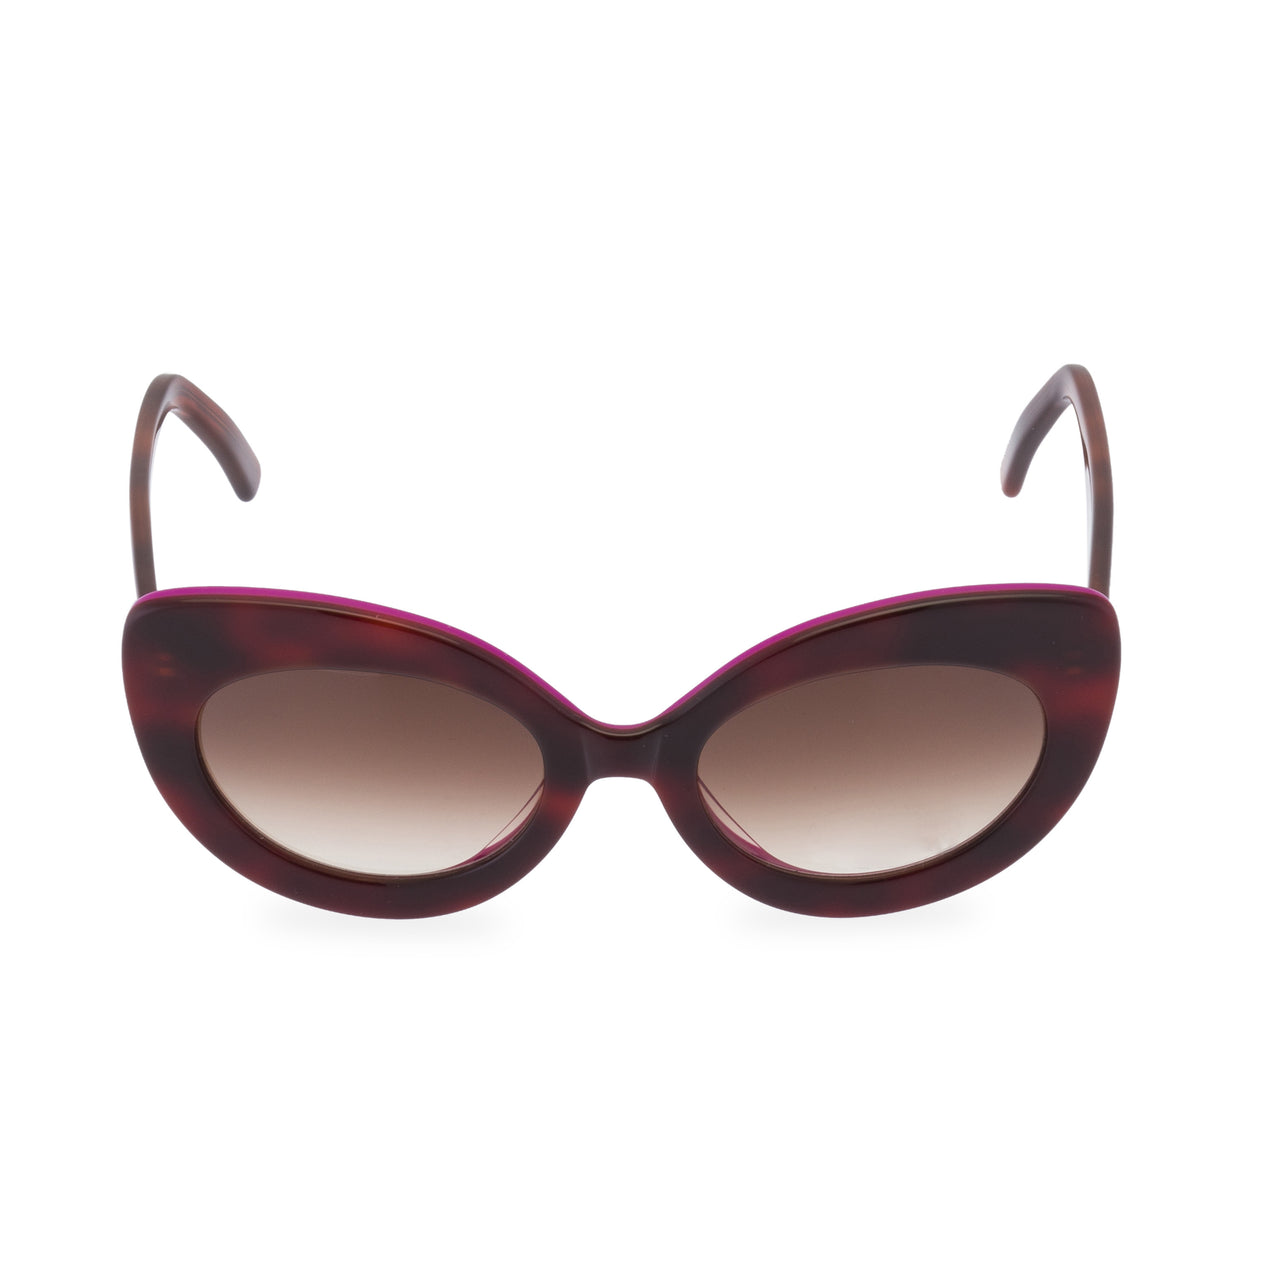 Cate - Sunglasses Amber / Hot Pink